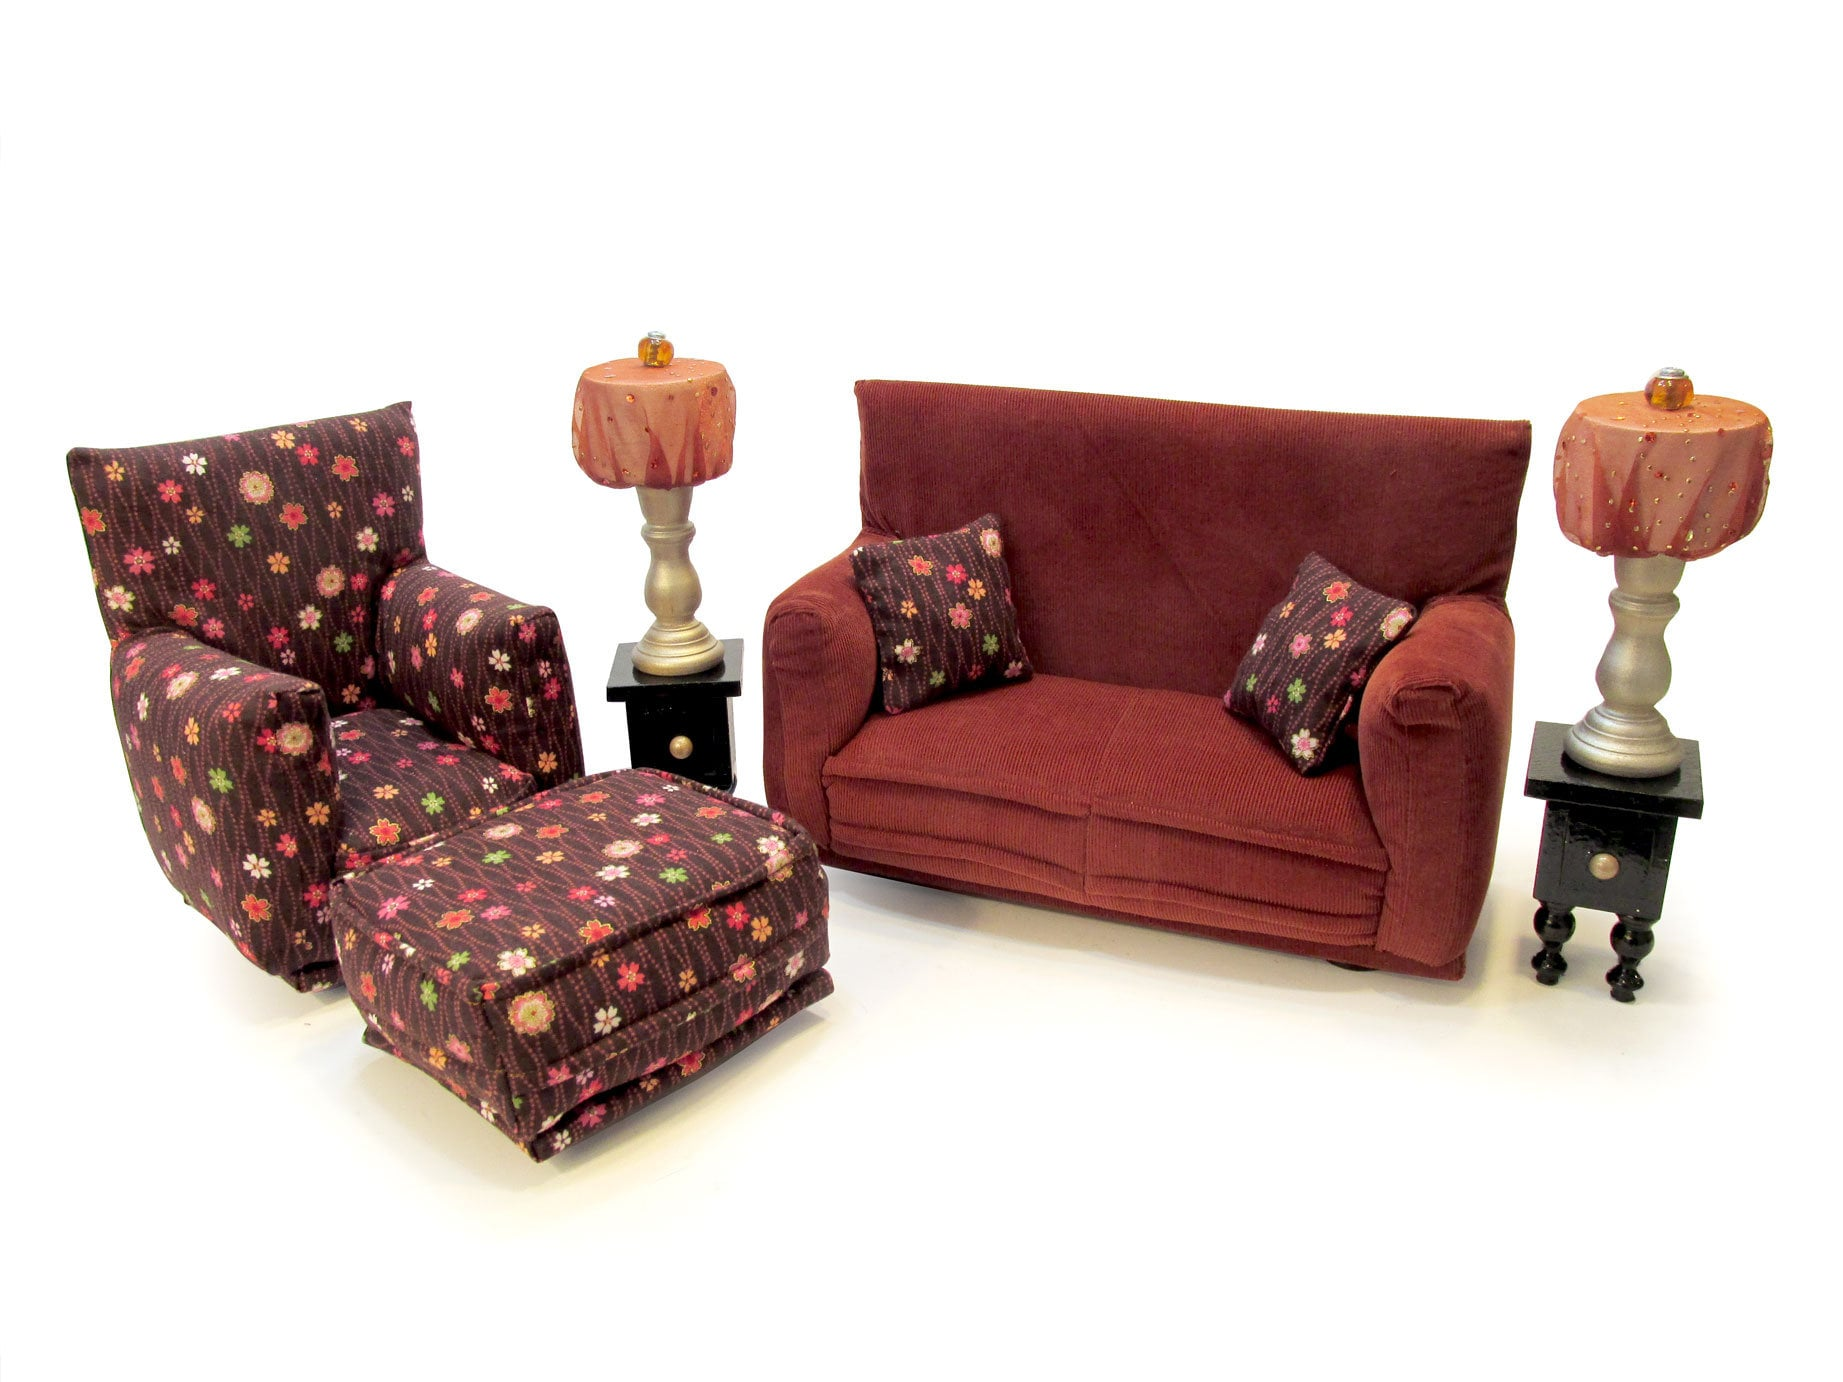 Barbie Doll Living Room Furniture 9 Pc Play Set 1 6 Scale Rust With Brown Tiny Flower Print